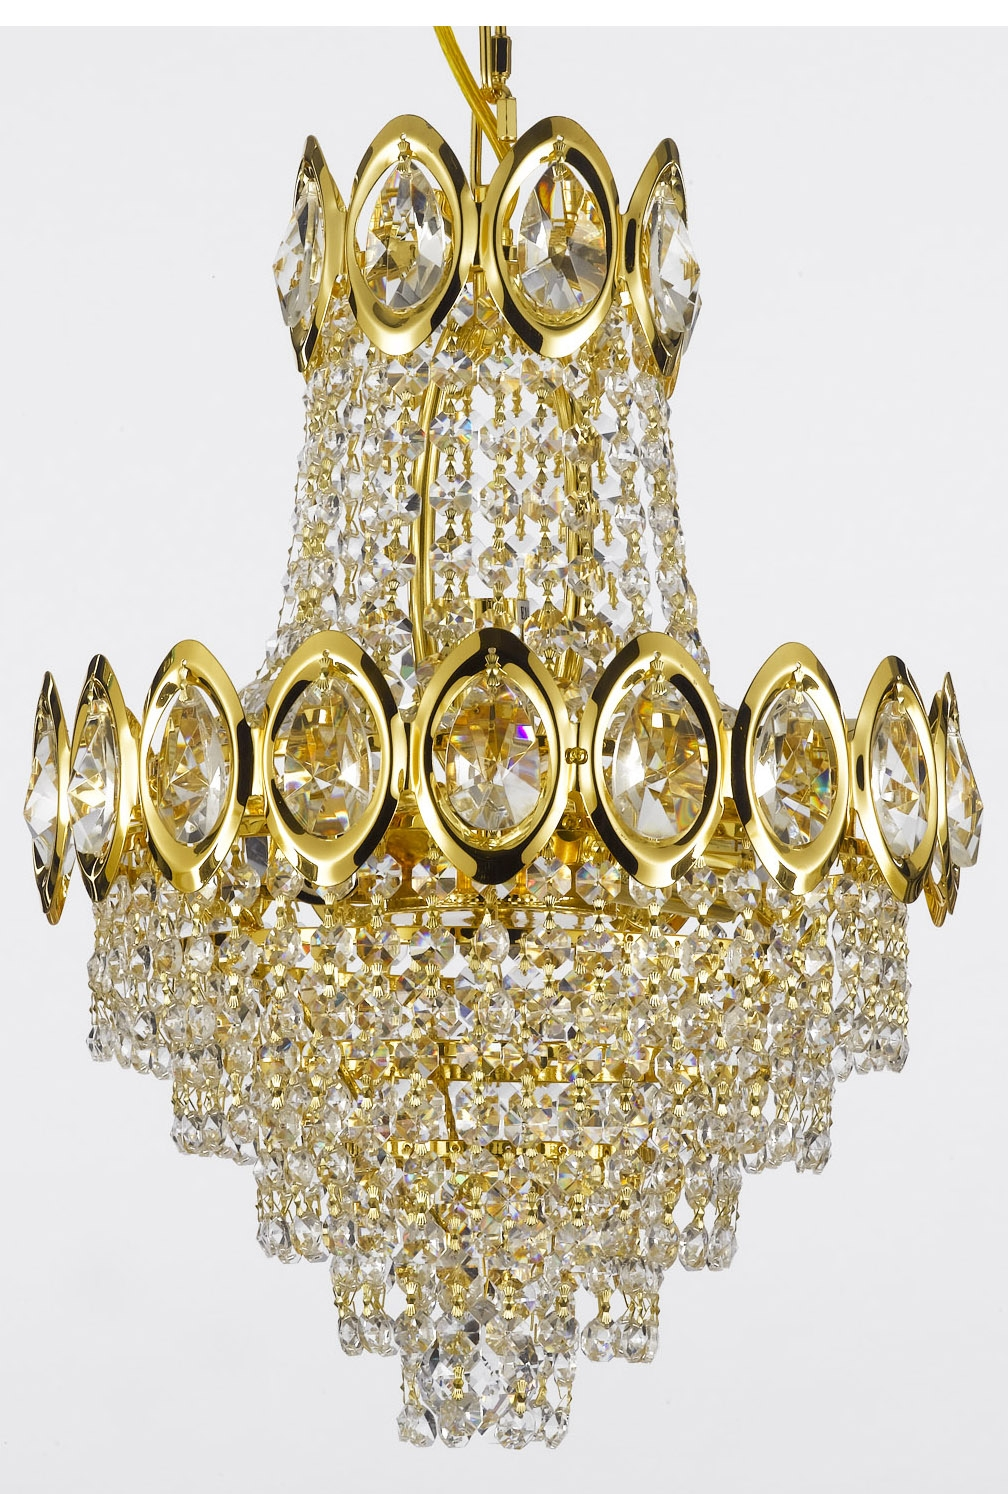 Gallery With Regard To Crystal Gold Chandeliers (Image 12 of 25)